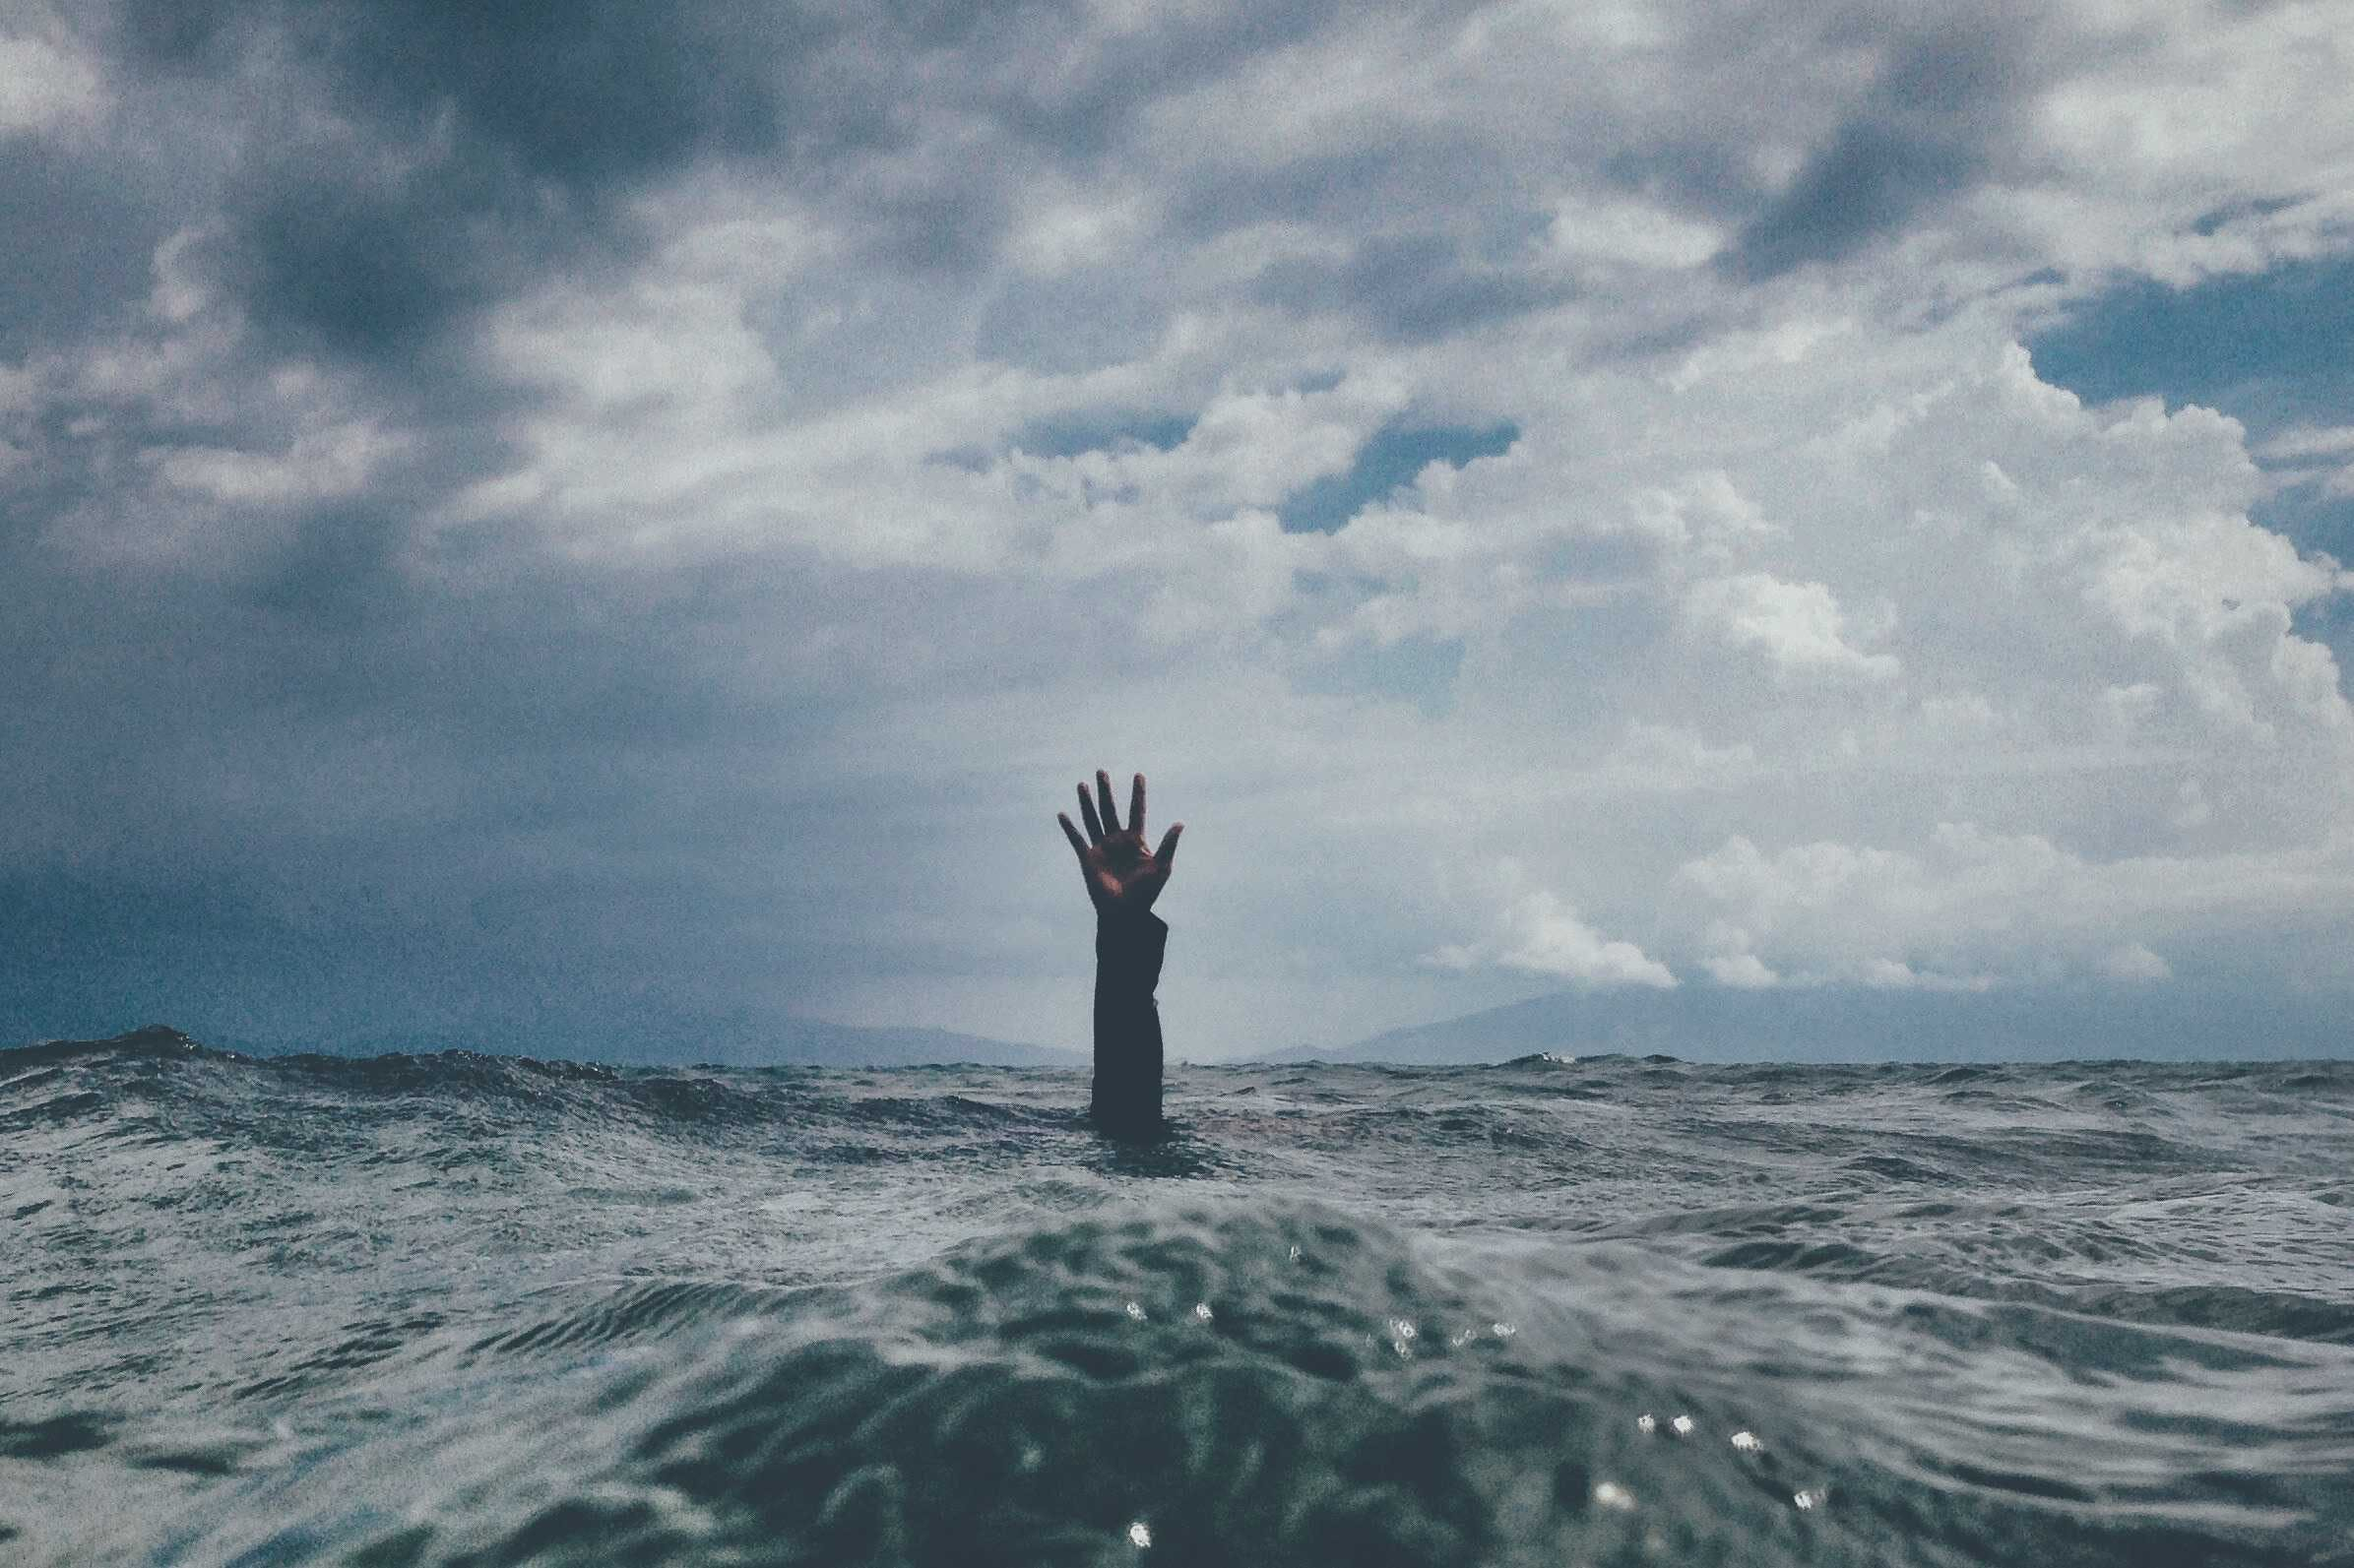 A person's visible hand reaching out from under the ocean's waters.